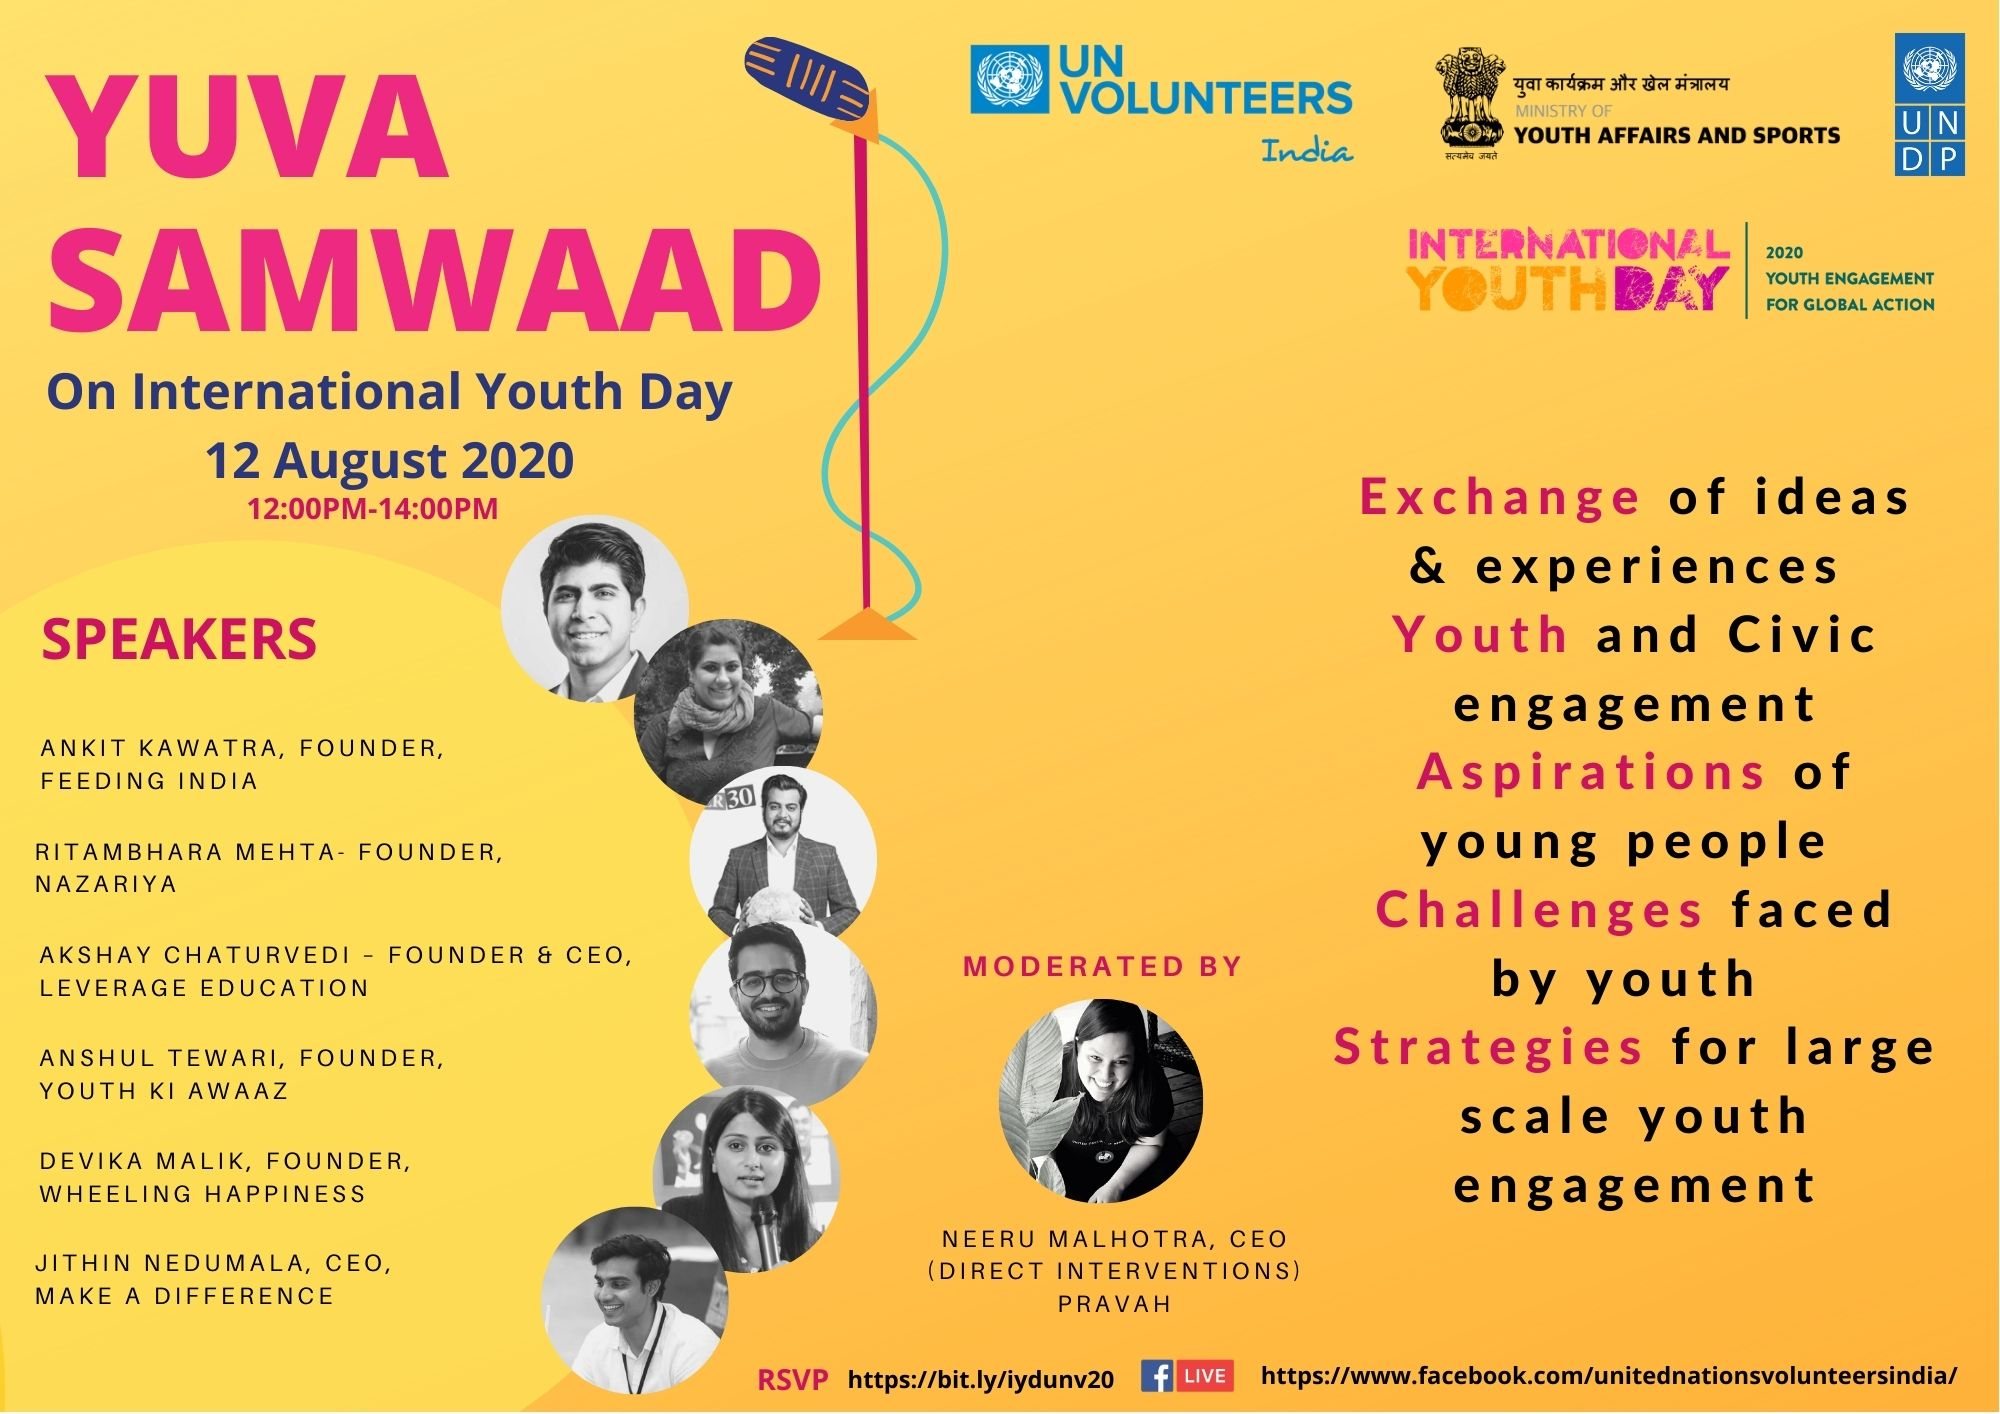 Yuva Samwaad UNV India